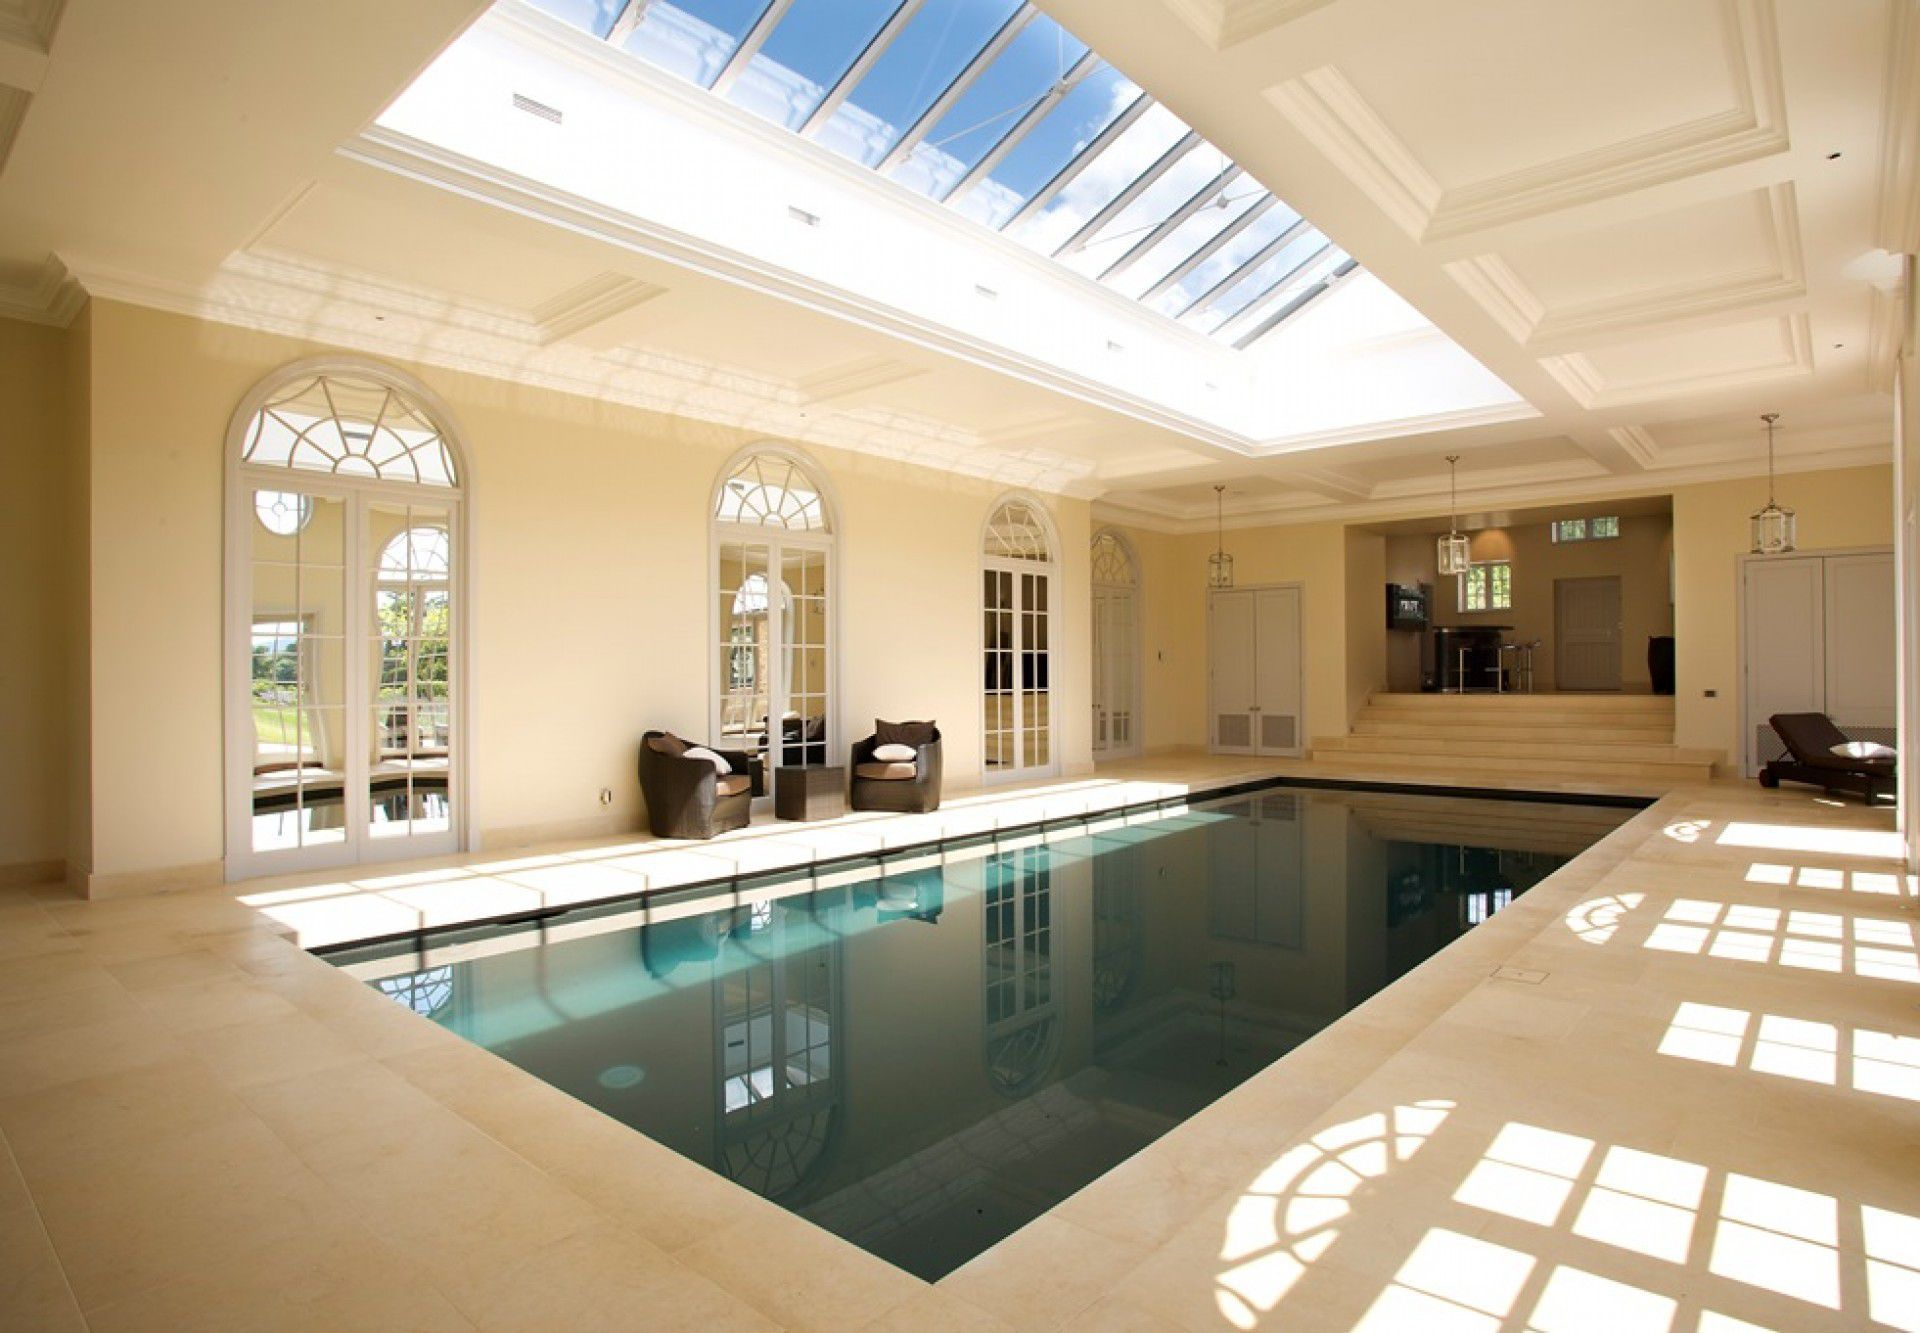 Cool Indoor Swimming Pools indoor swimming pool with affordable budget - http://www